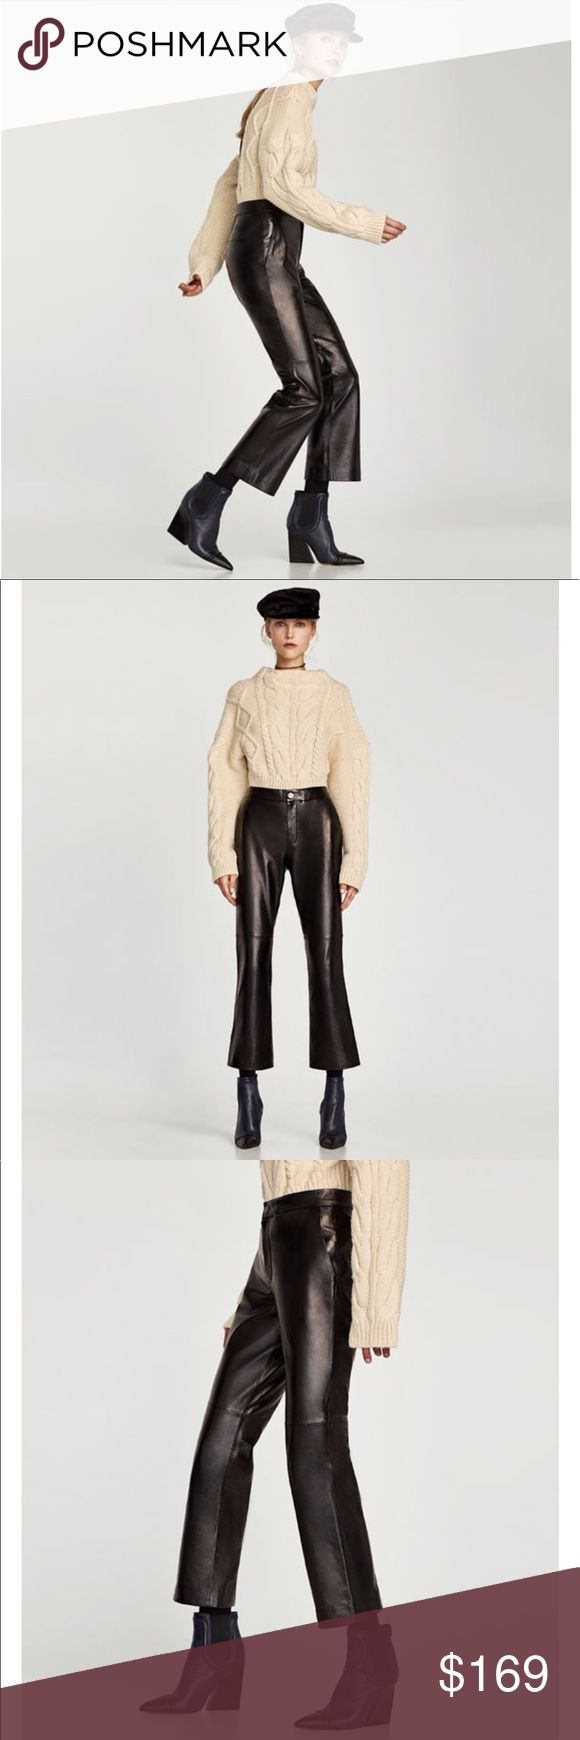 ZARA STUDIO lambskin leather trousers Small ZARA STUDIO lambskin leather trousers Small. Brand new with tags never worn. Soft, buttery genuine lambskin leather fabric. These are just gorgeous! Original retail $299. Limited edition! These are cropped, with a very slight flare, once on it's hard to tell. Zara Pants Ankle & Cropped